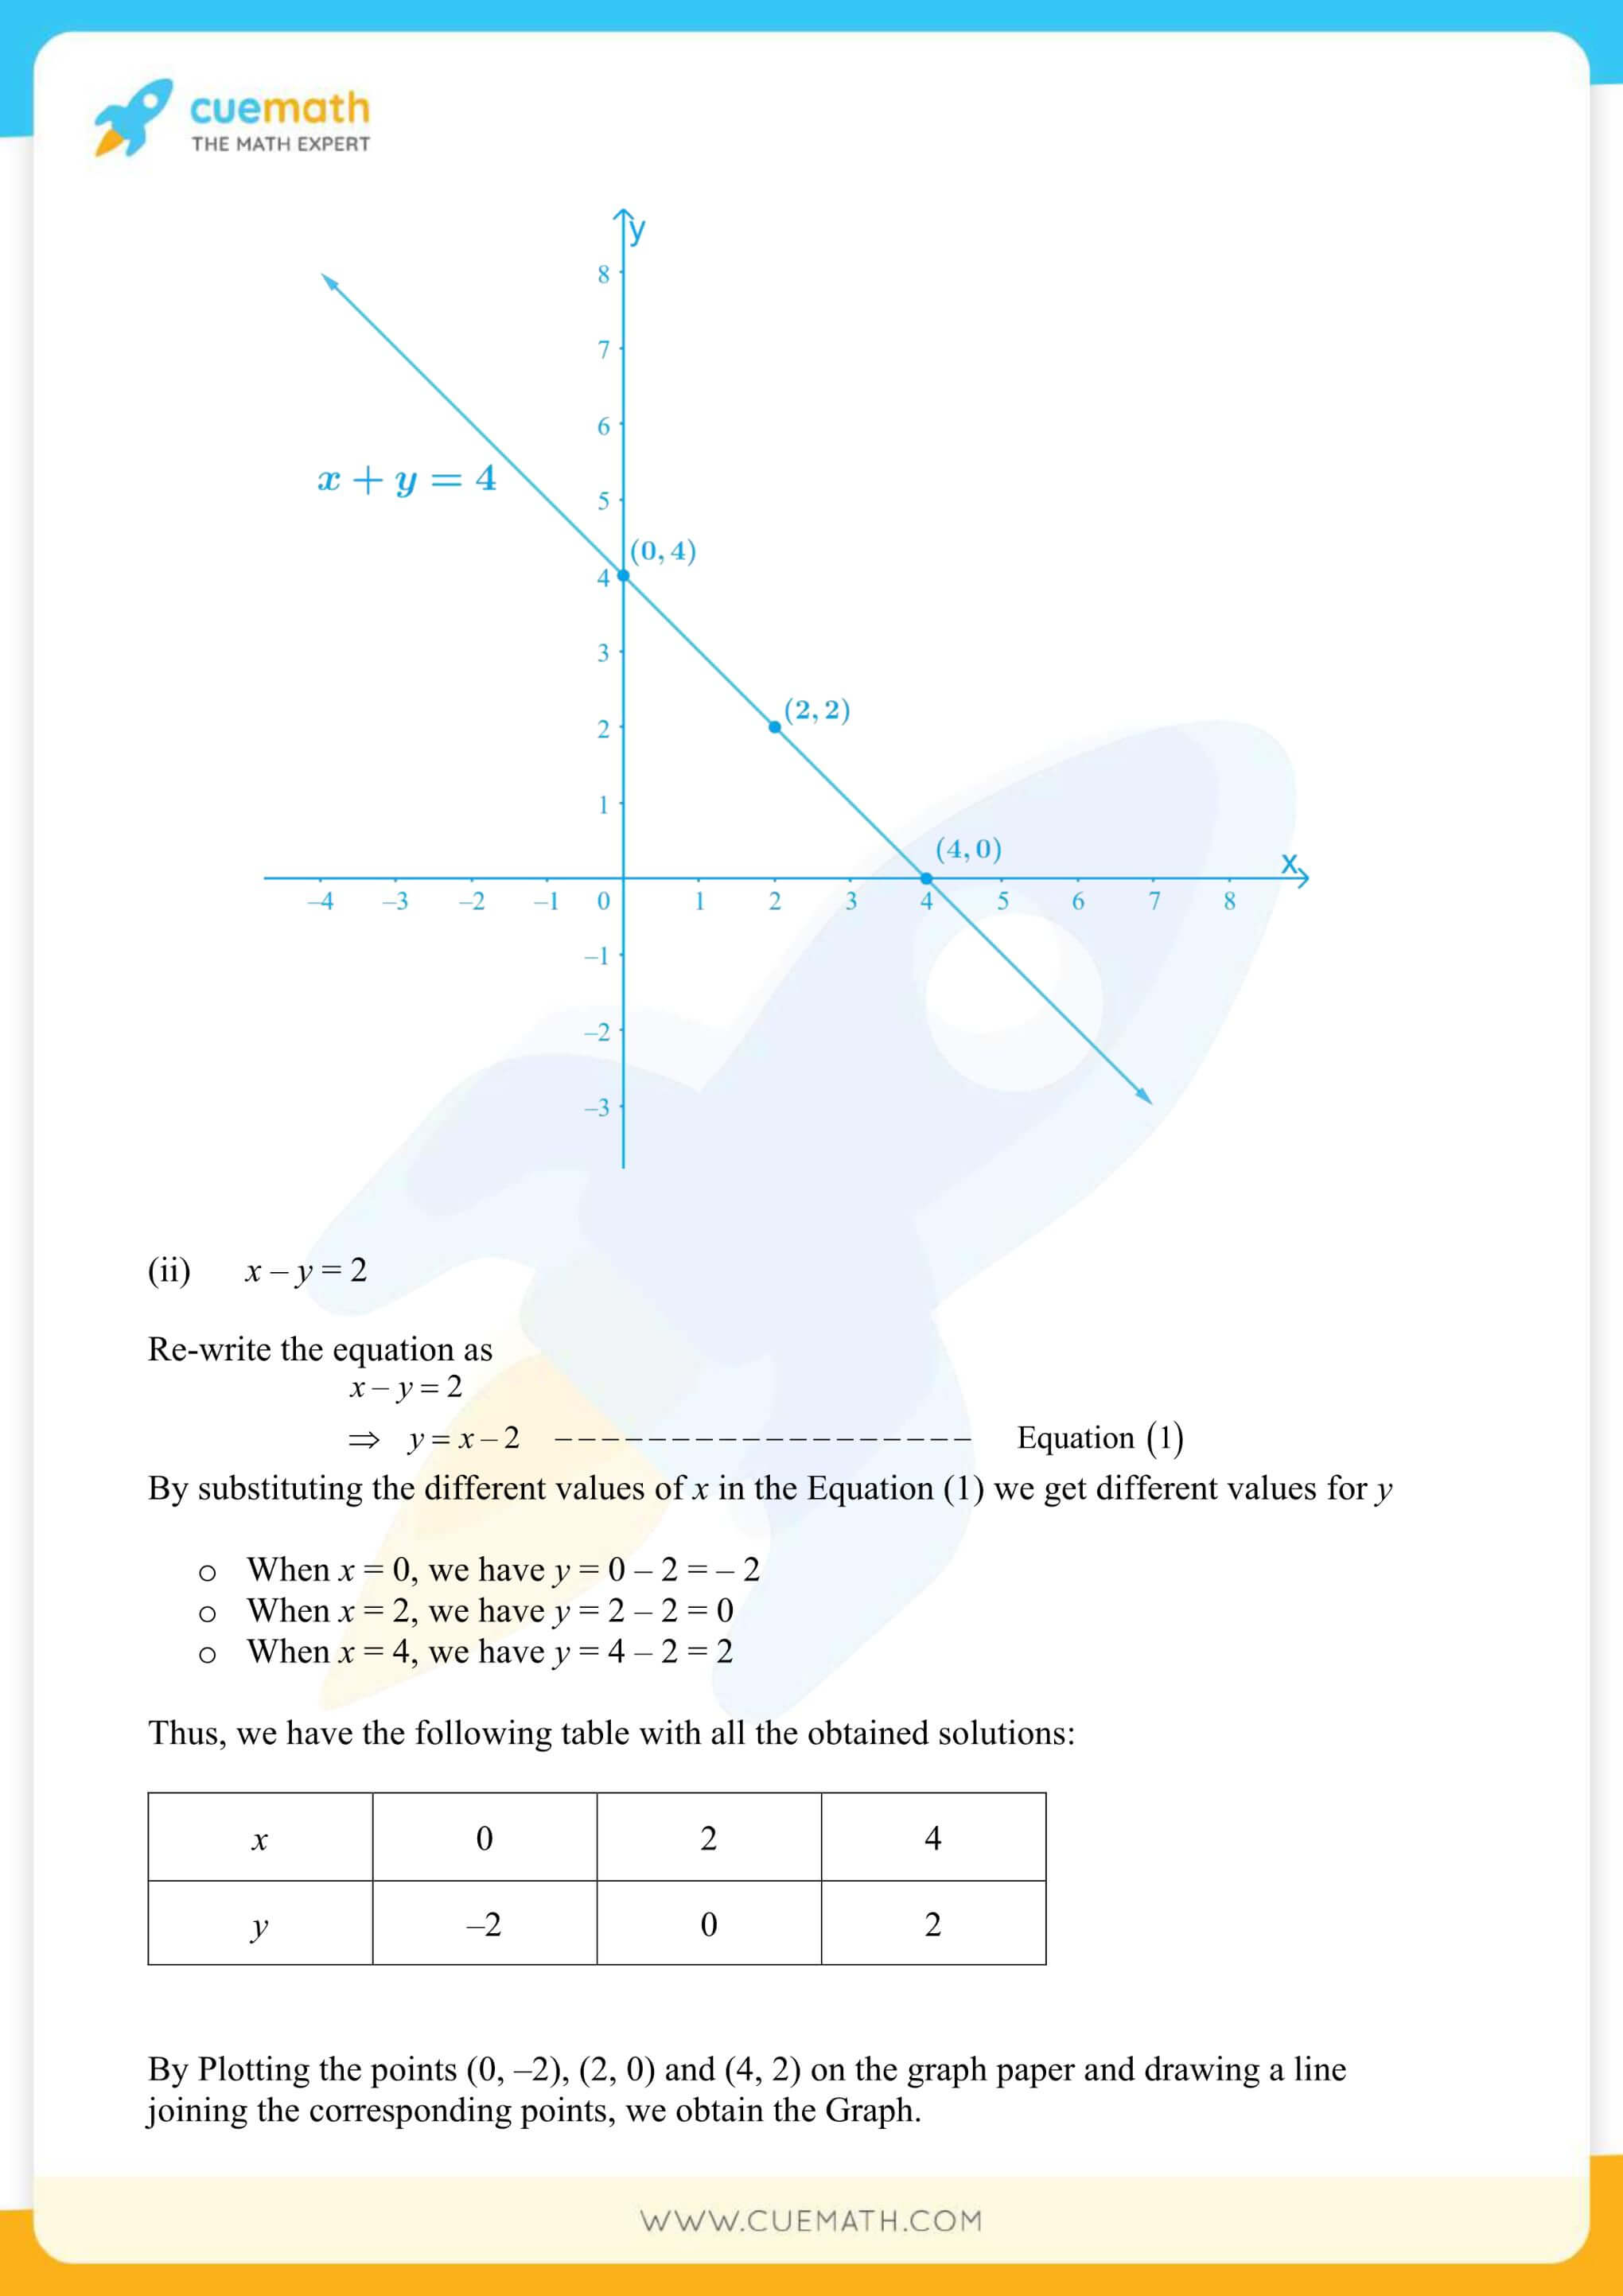 NCERT Solutions Class 9 Math Chapter 4 Linear Equations In Two Variables 10